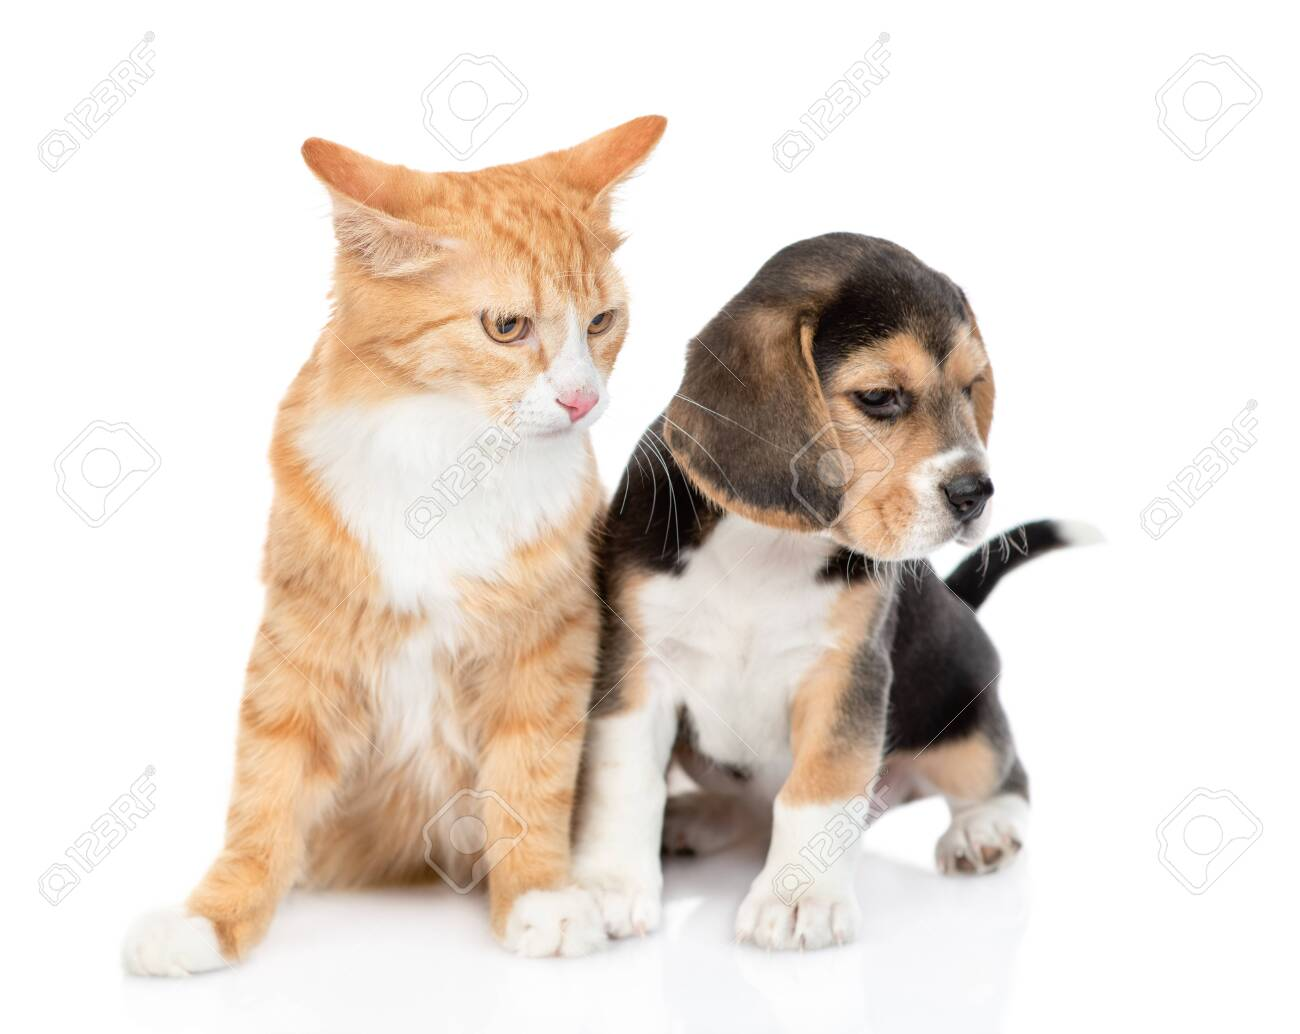 Cute Beagle Puppy And Red Tabby Cat Looking Away Together Isolated Stock Photo Picture And Royalty Free Image Image 136377515